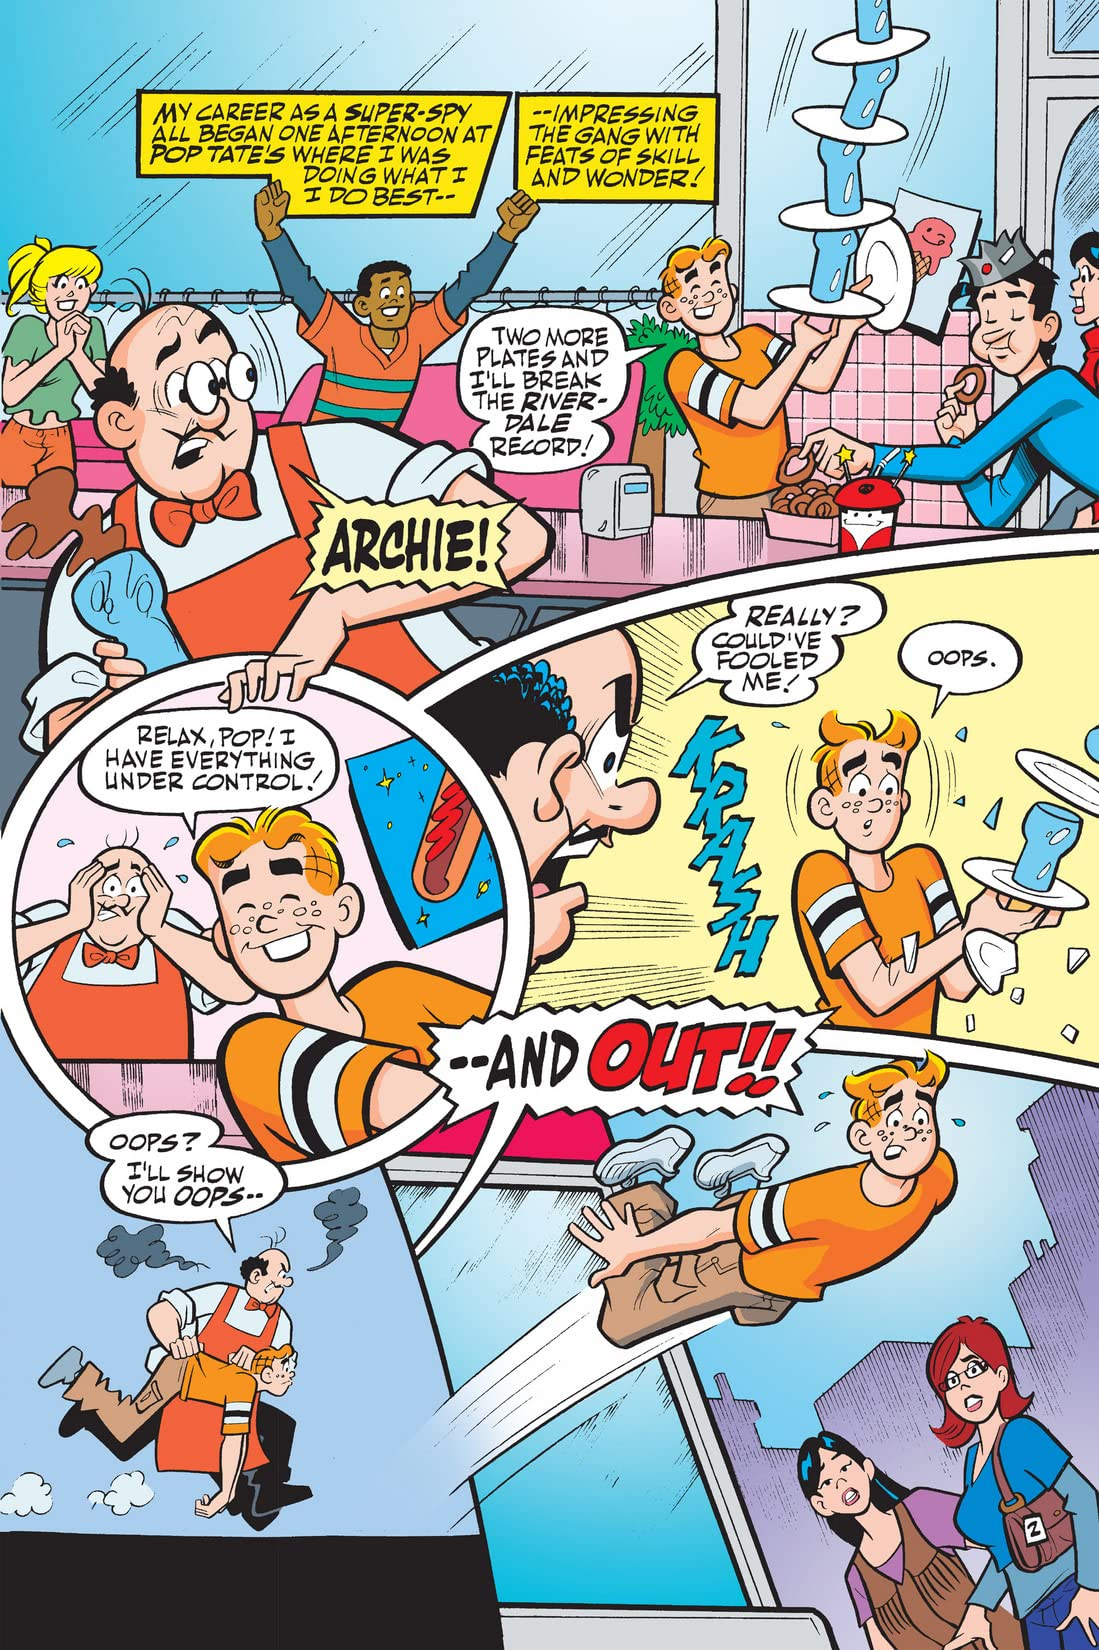 Archie: The Man From R.I.V.E.R.D.A.L.E.